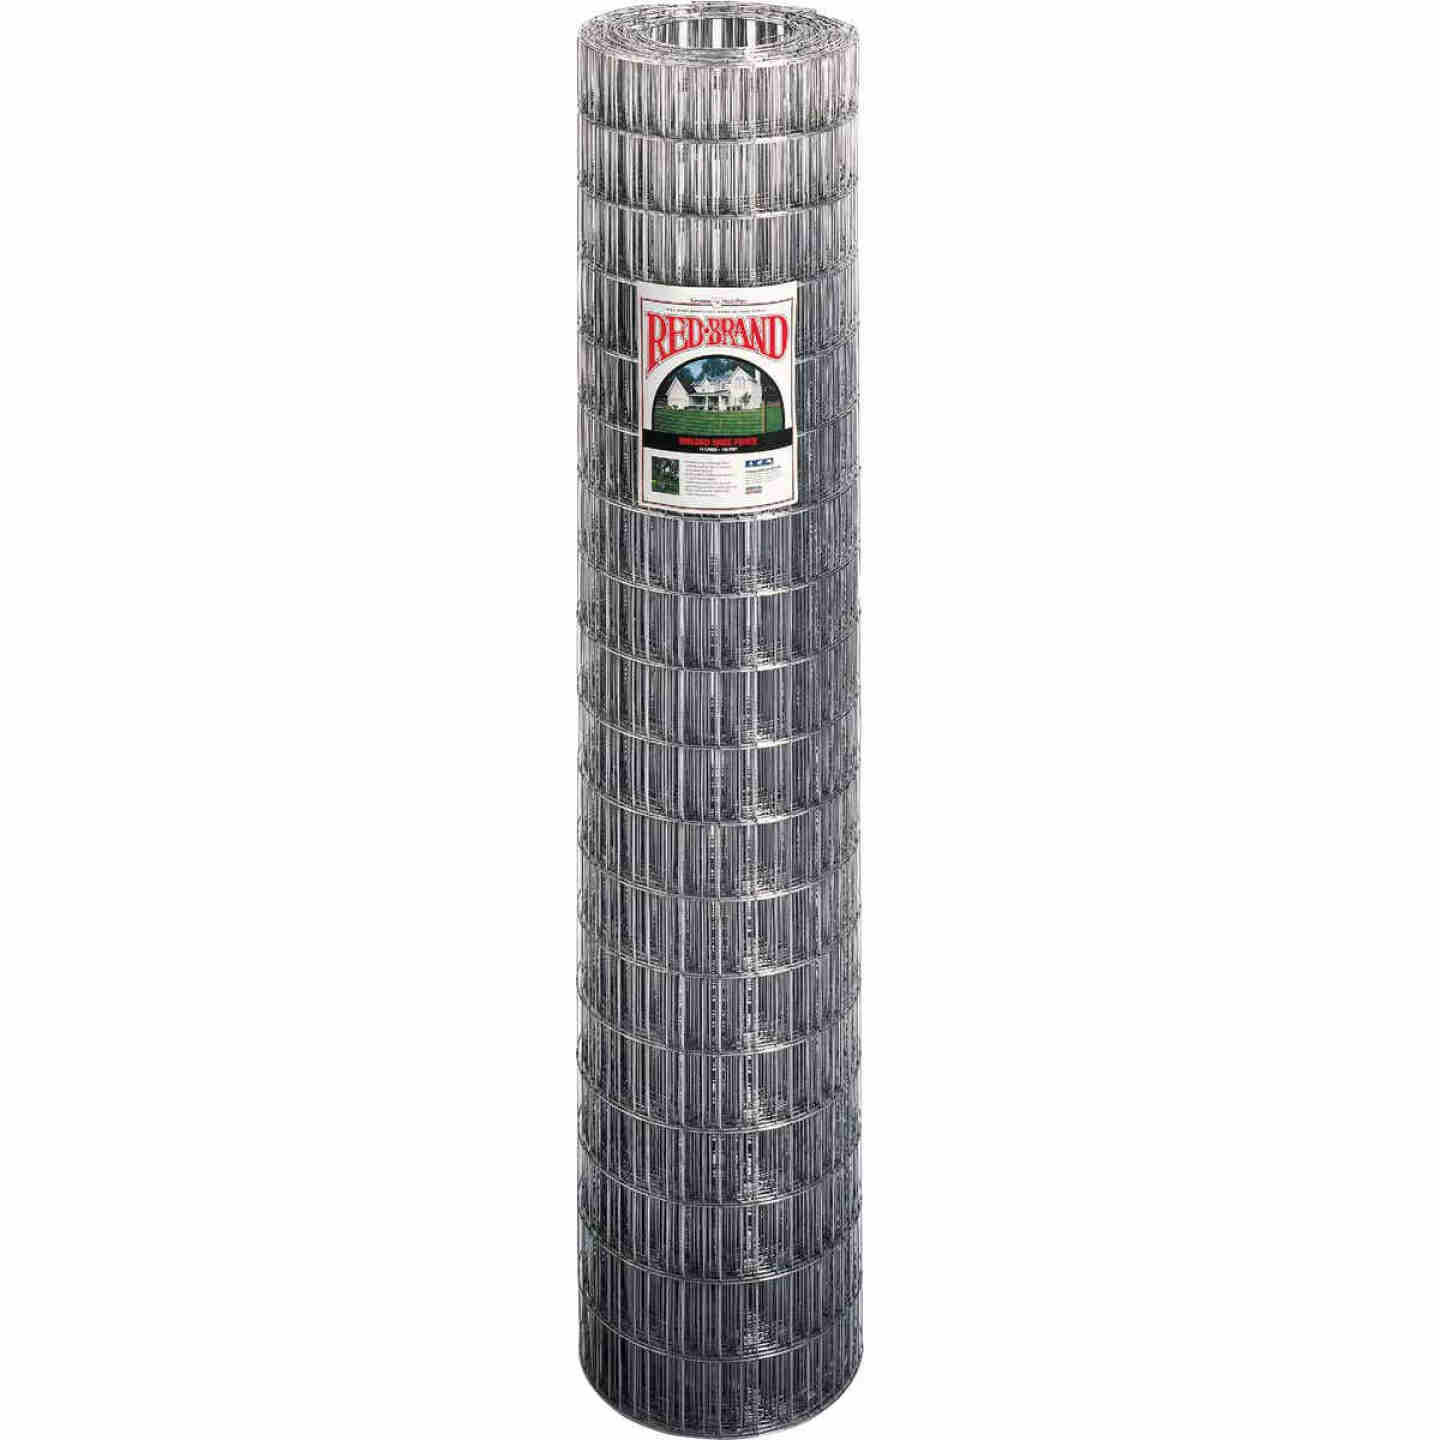 Keystone Red Brand 60 In. H. x 100 Ft. L. (2x4) Welded Wire Utility Fence Image 1